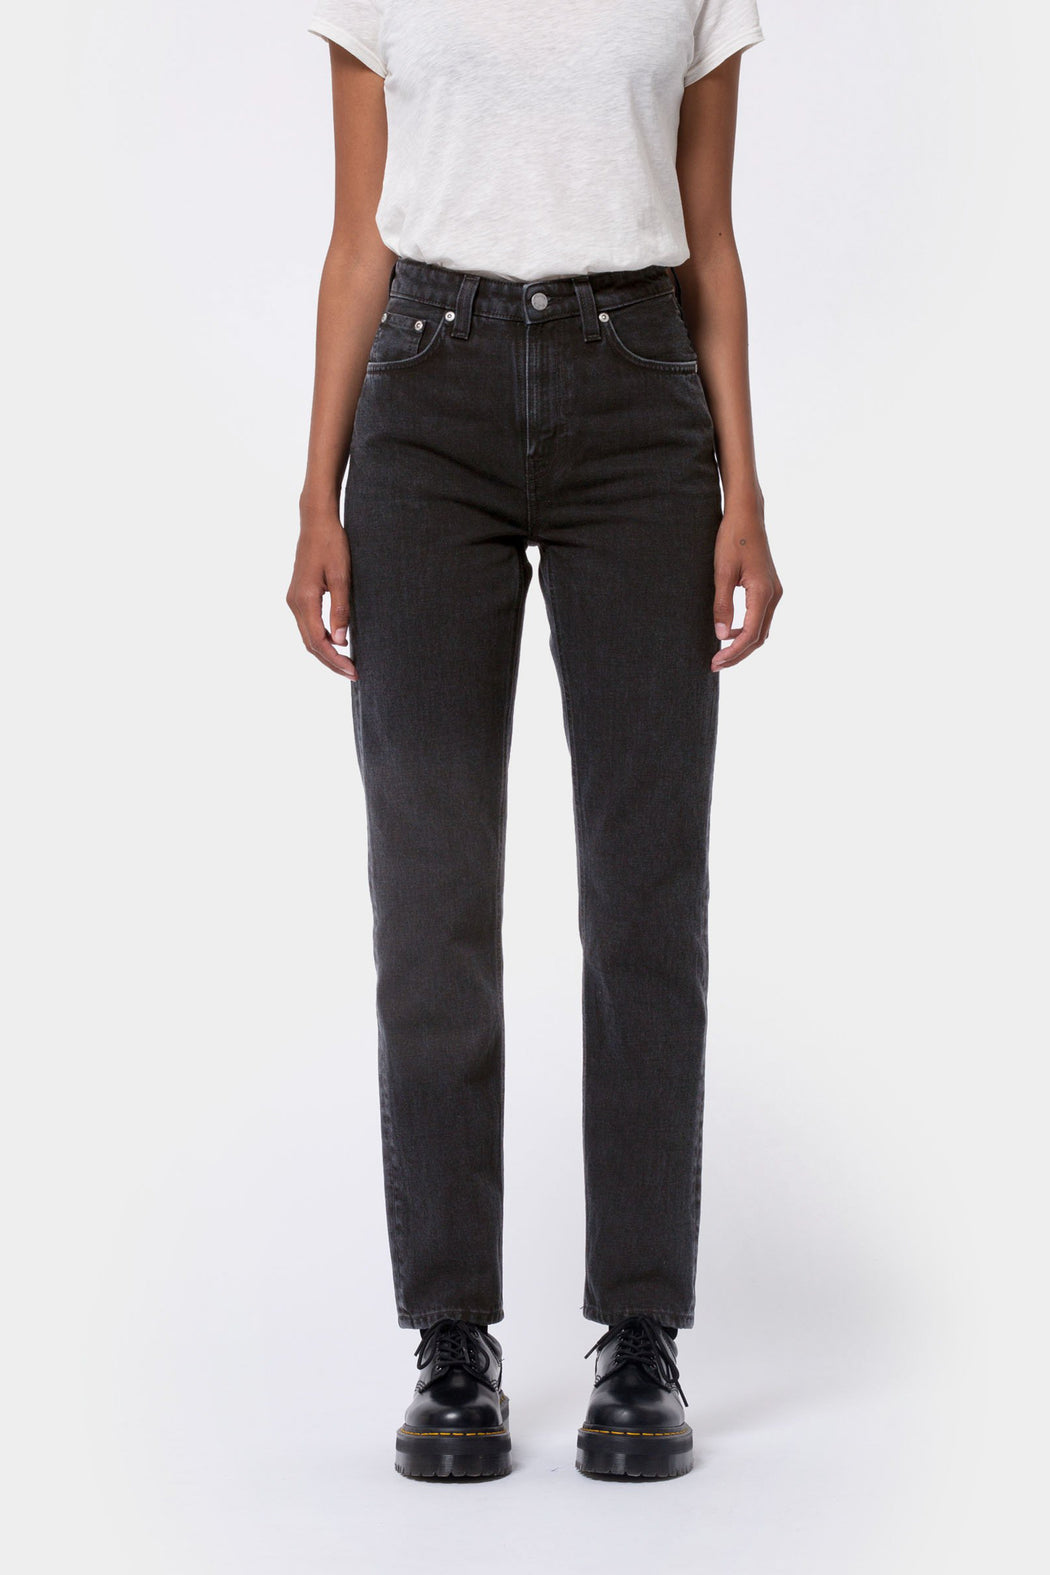 BREEZY BRITT Jeans black worn